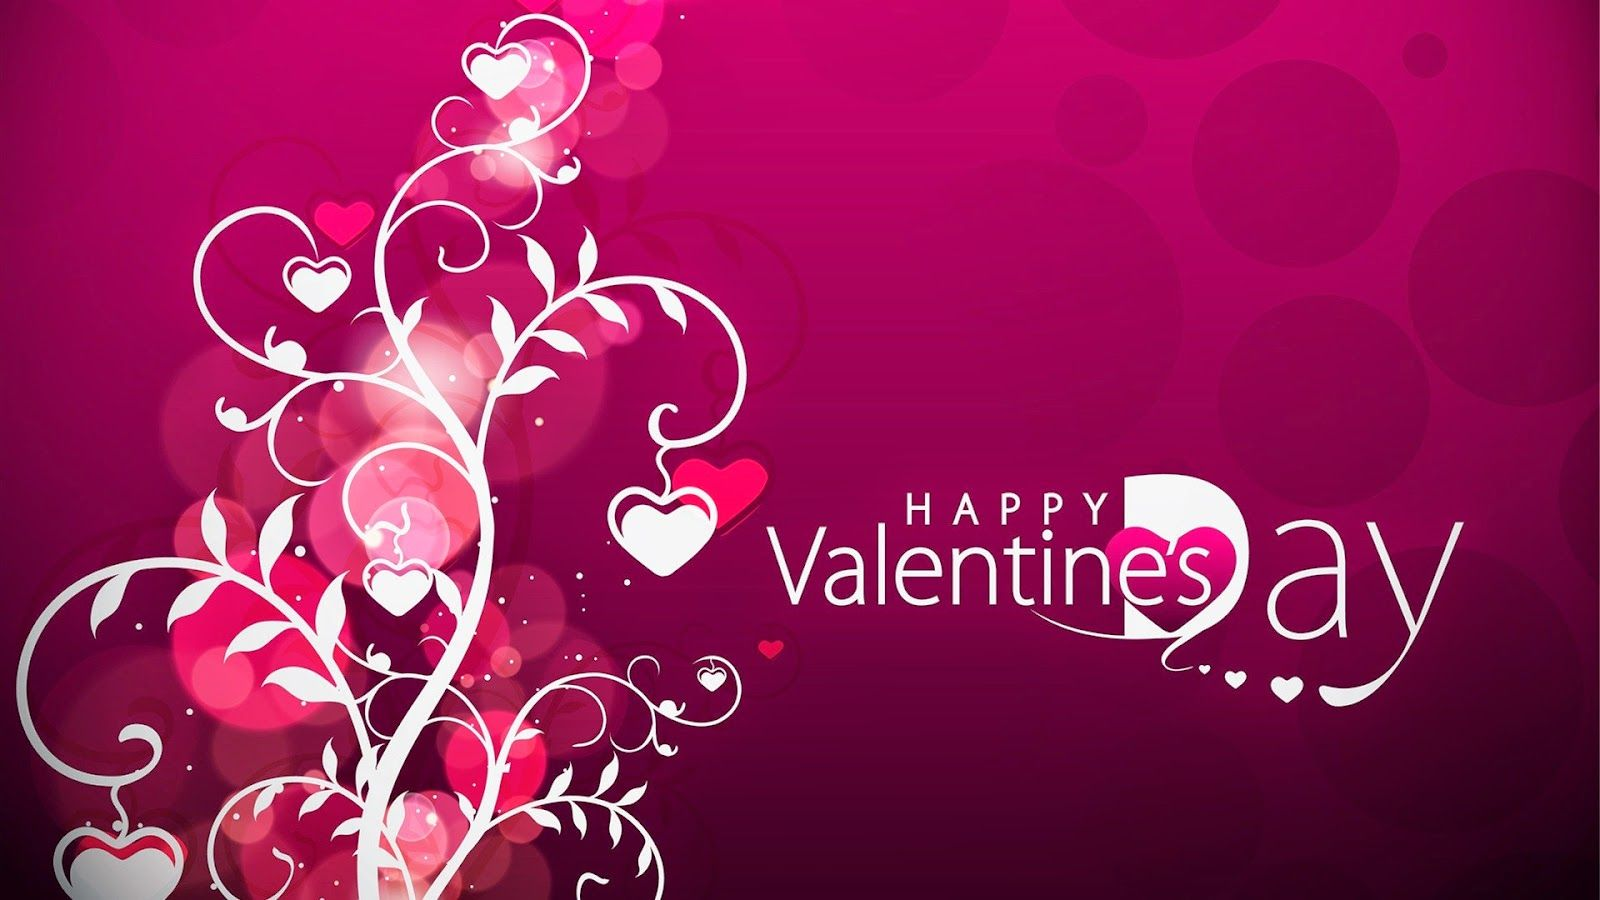 15 New Valentines Day Desktop Wallpapers For 2015